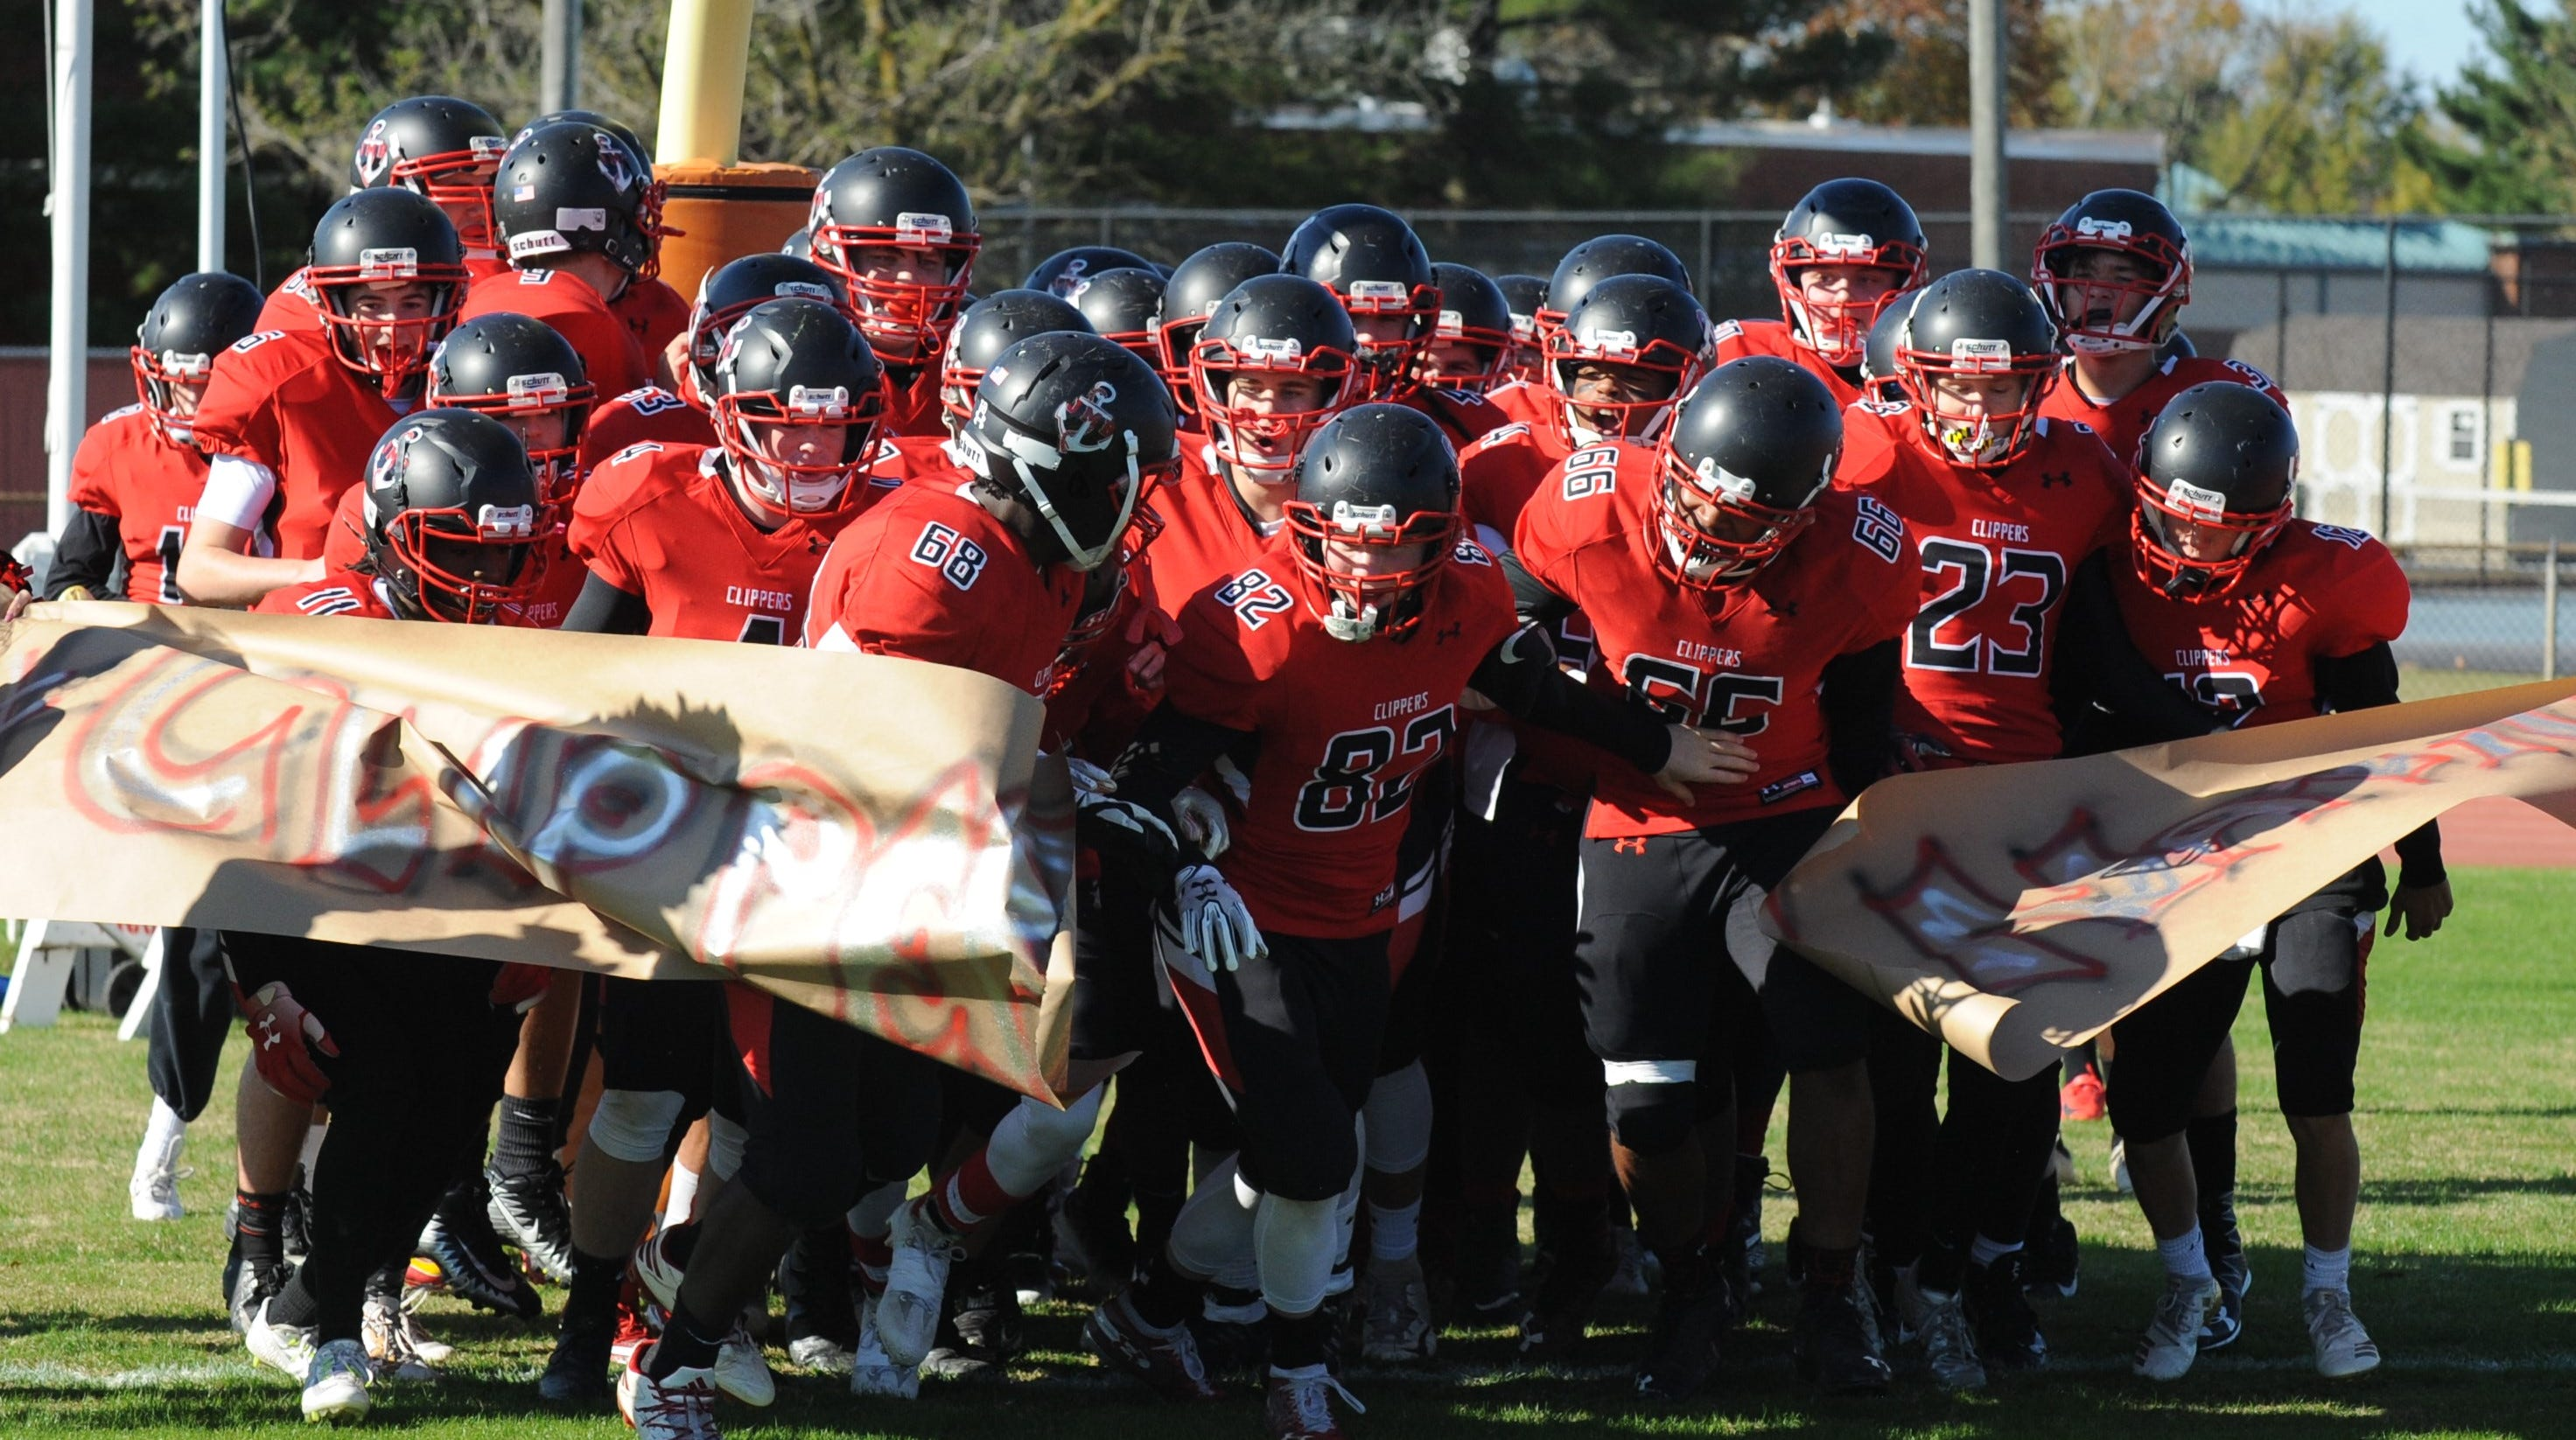 The James M. Bennett football team runs onto the field for its playoff game against Long Reach on Saturday, Nov. 10, 2018.